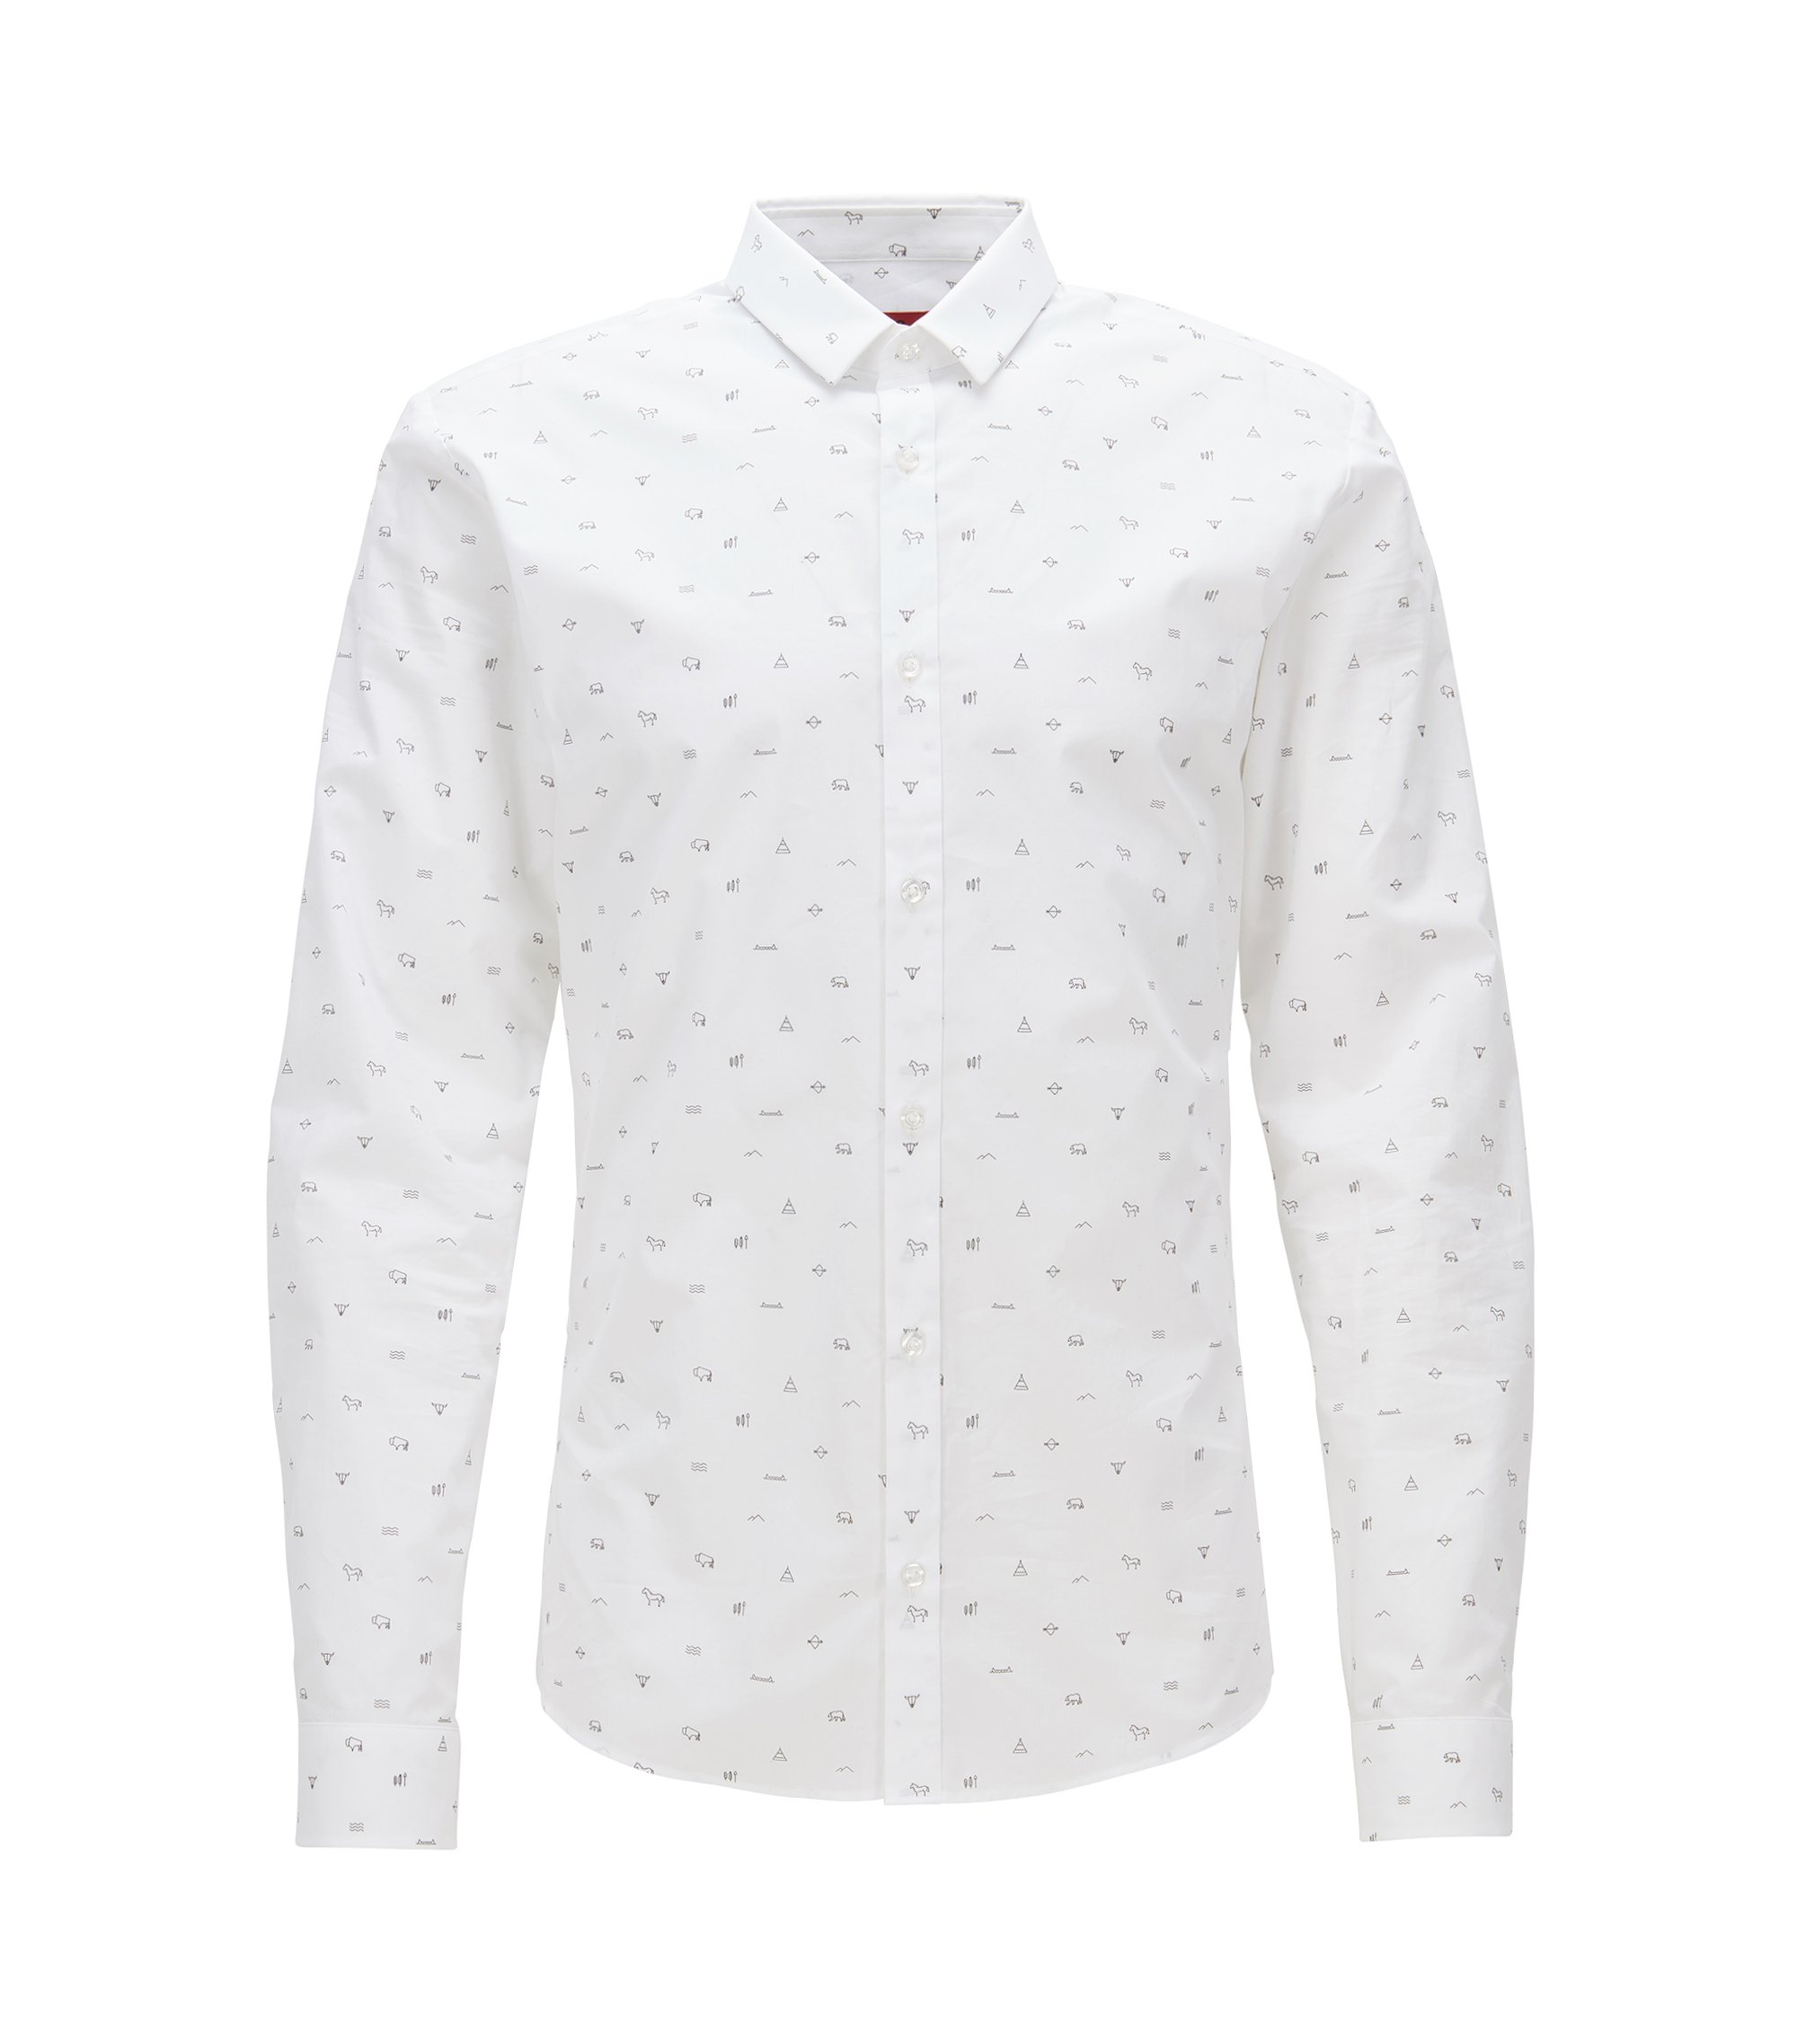 'Ero' | Extra Slim Fit, Patterned Cotton Button Down Shirt, Open White